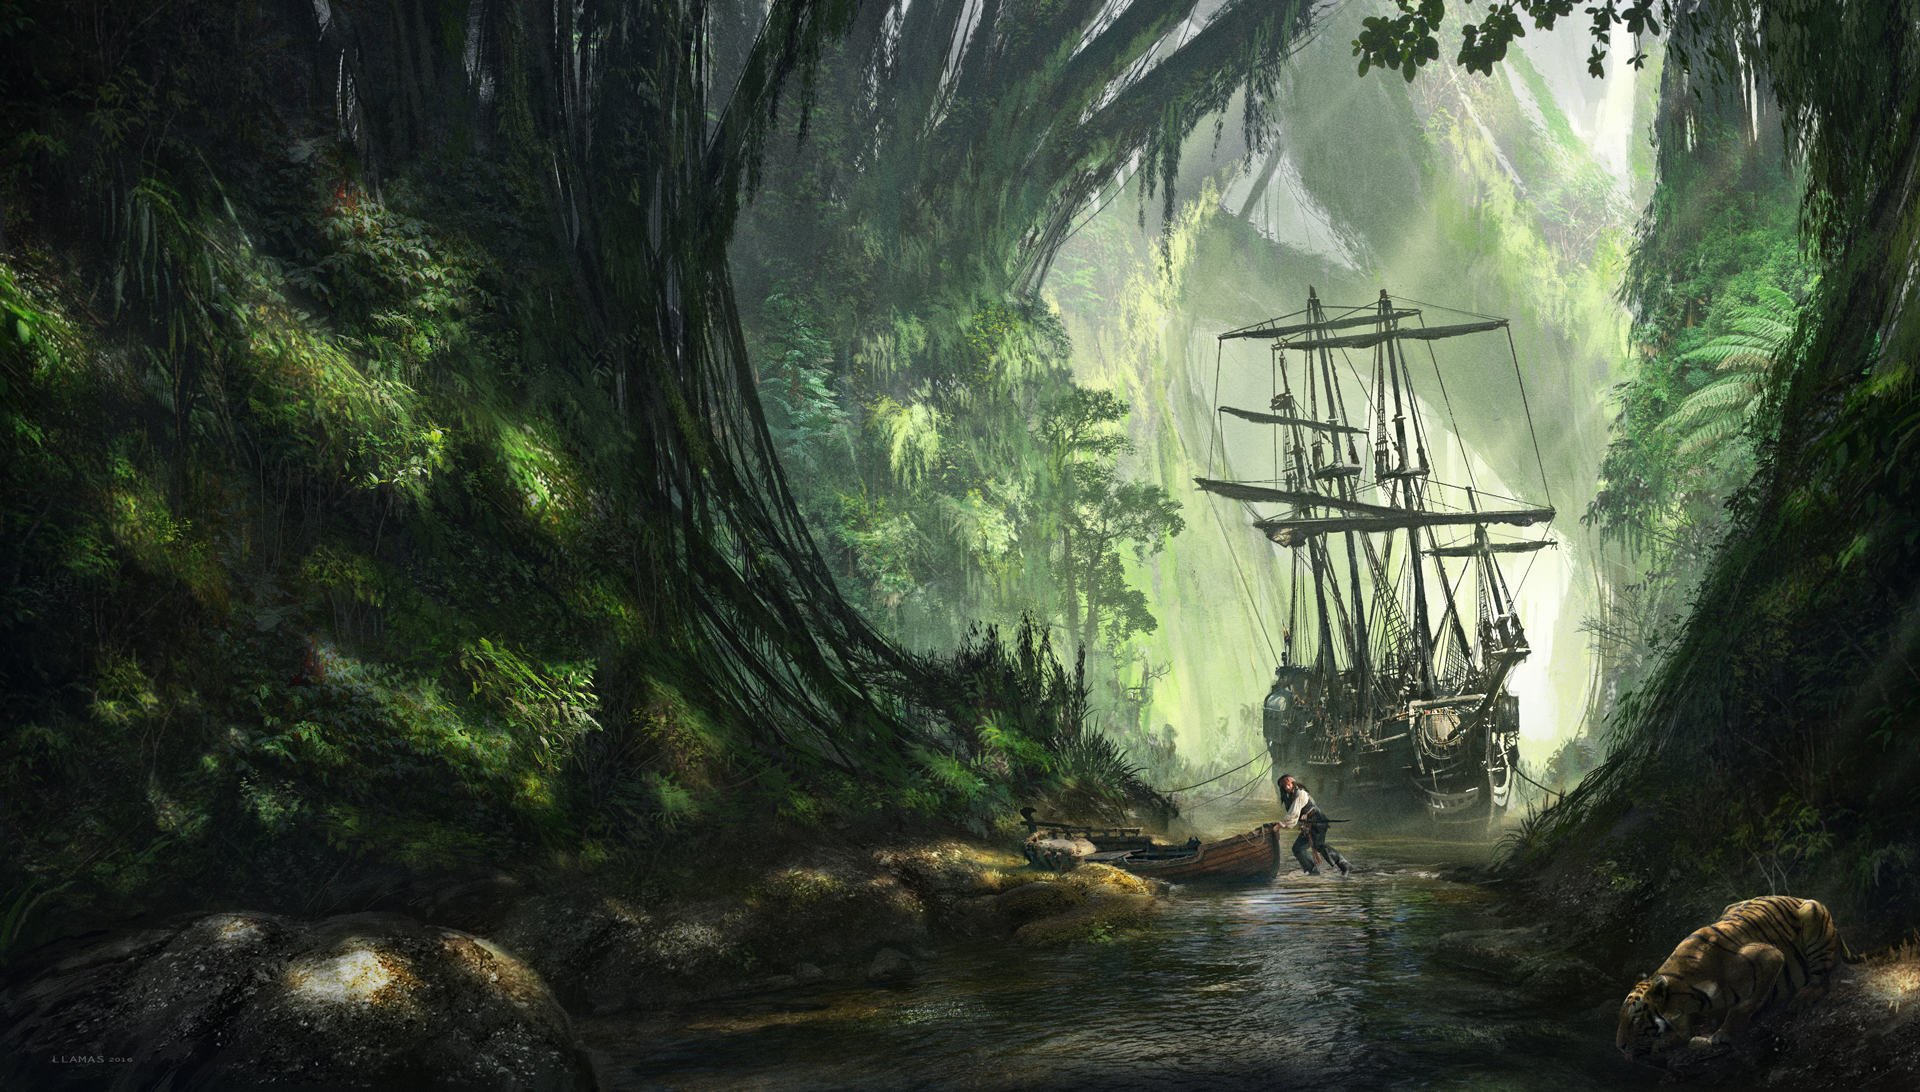 Forest Jack Sparrow Pirate River Ship Tiger 1920x1092